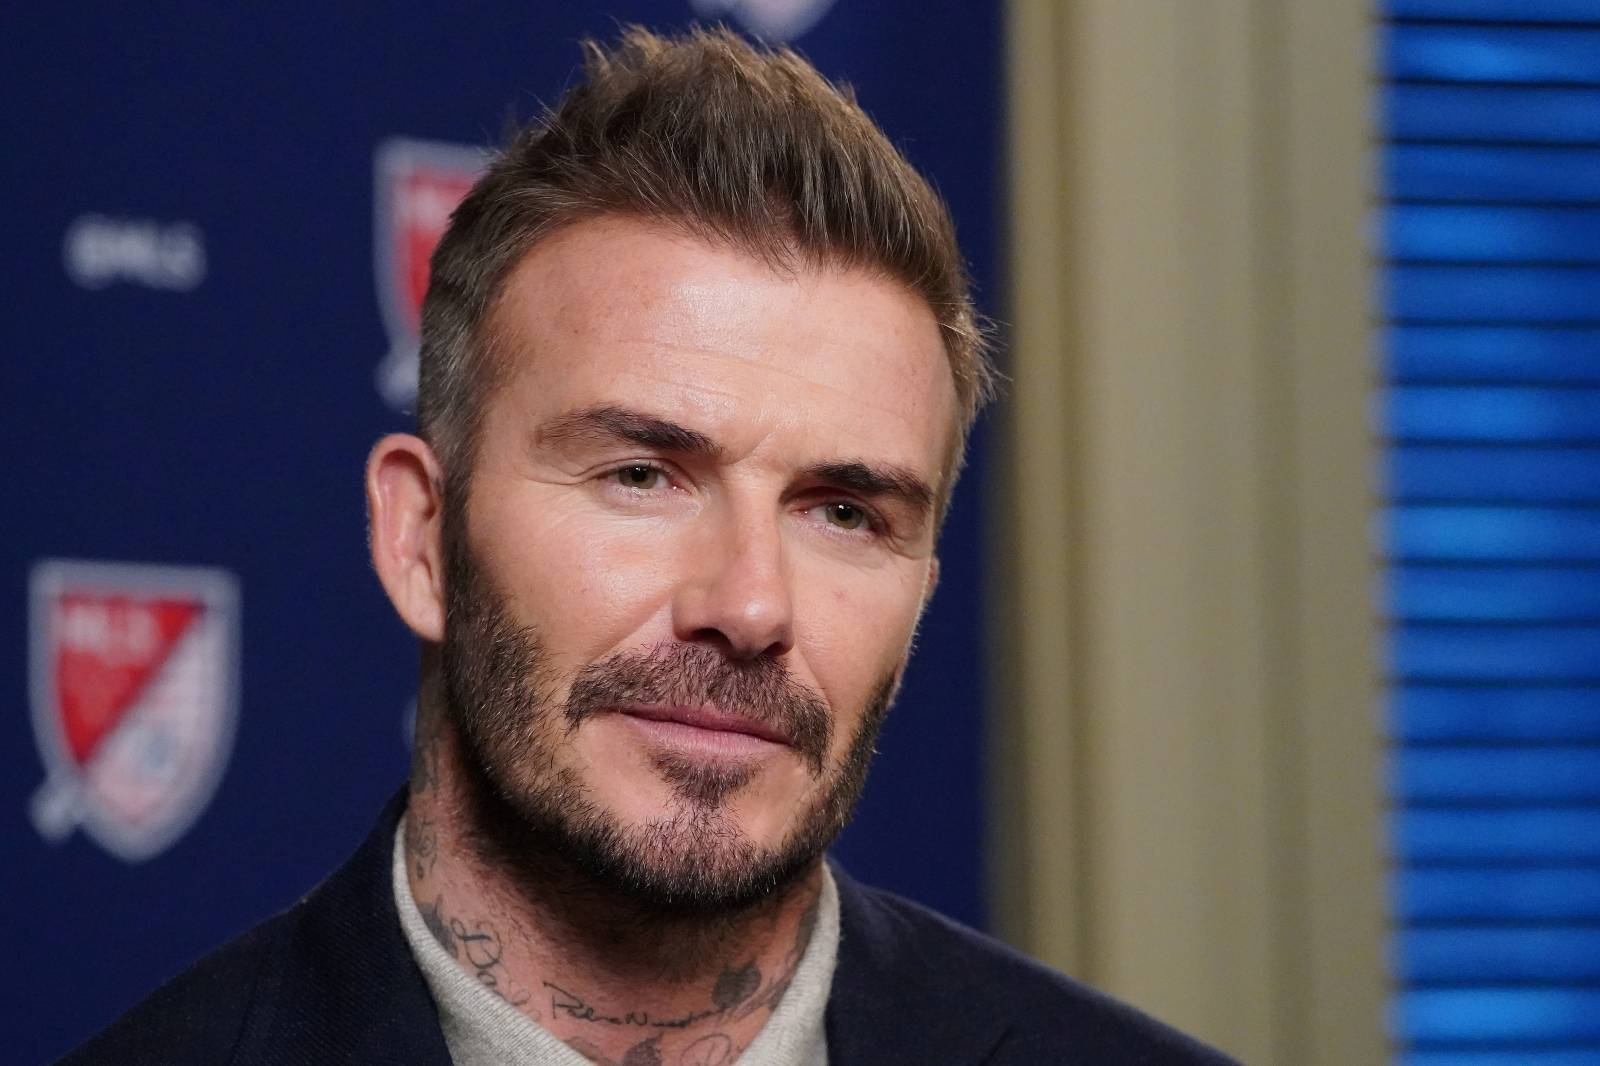 FILE PHOTO: Former soccer player and MLS team owner David Beckham speaks during an interview in the Manhattan borough of New York City